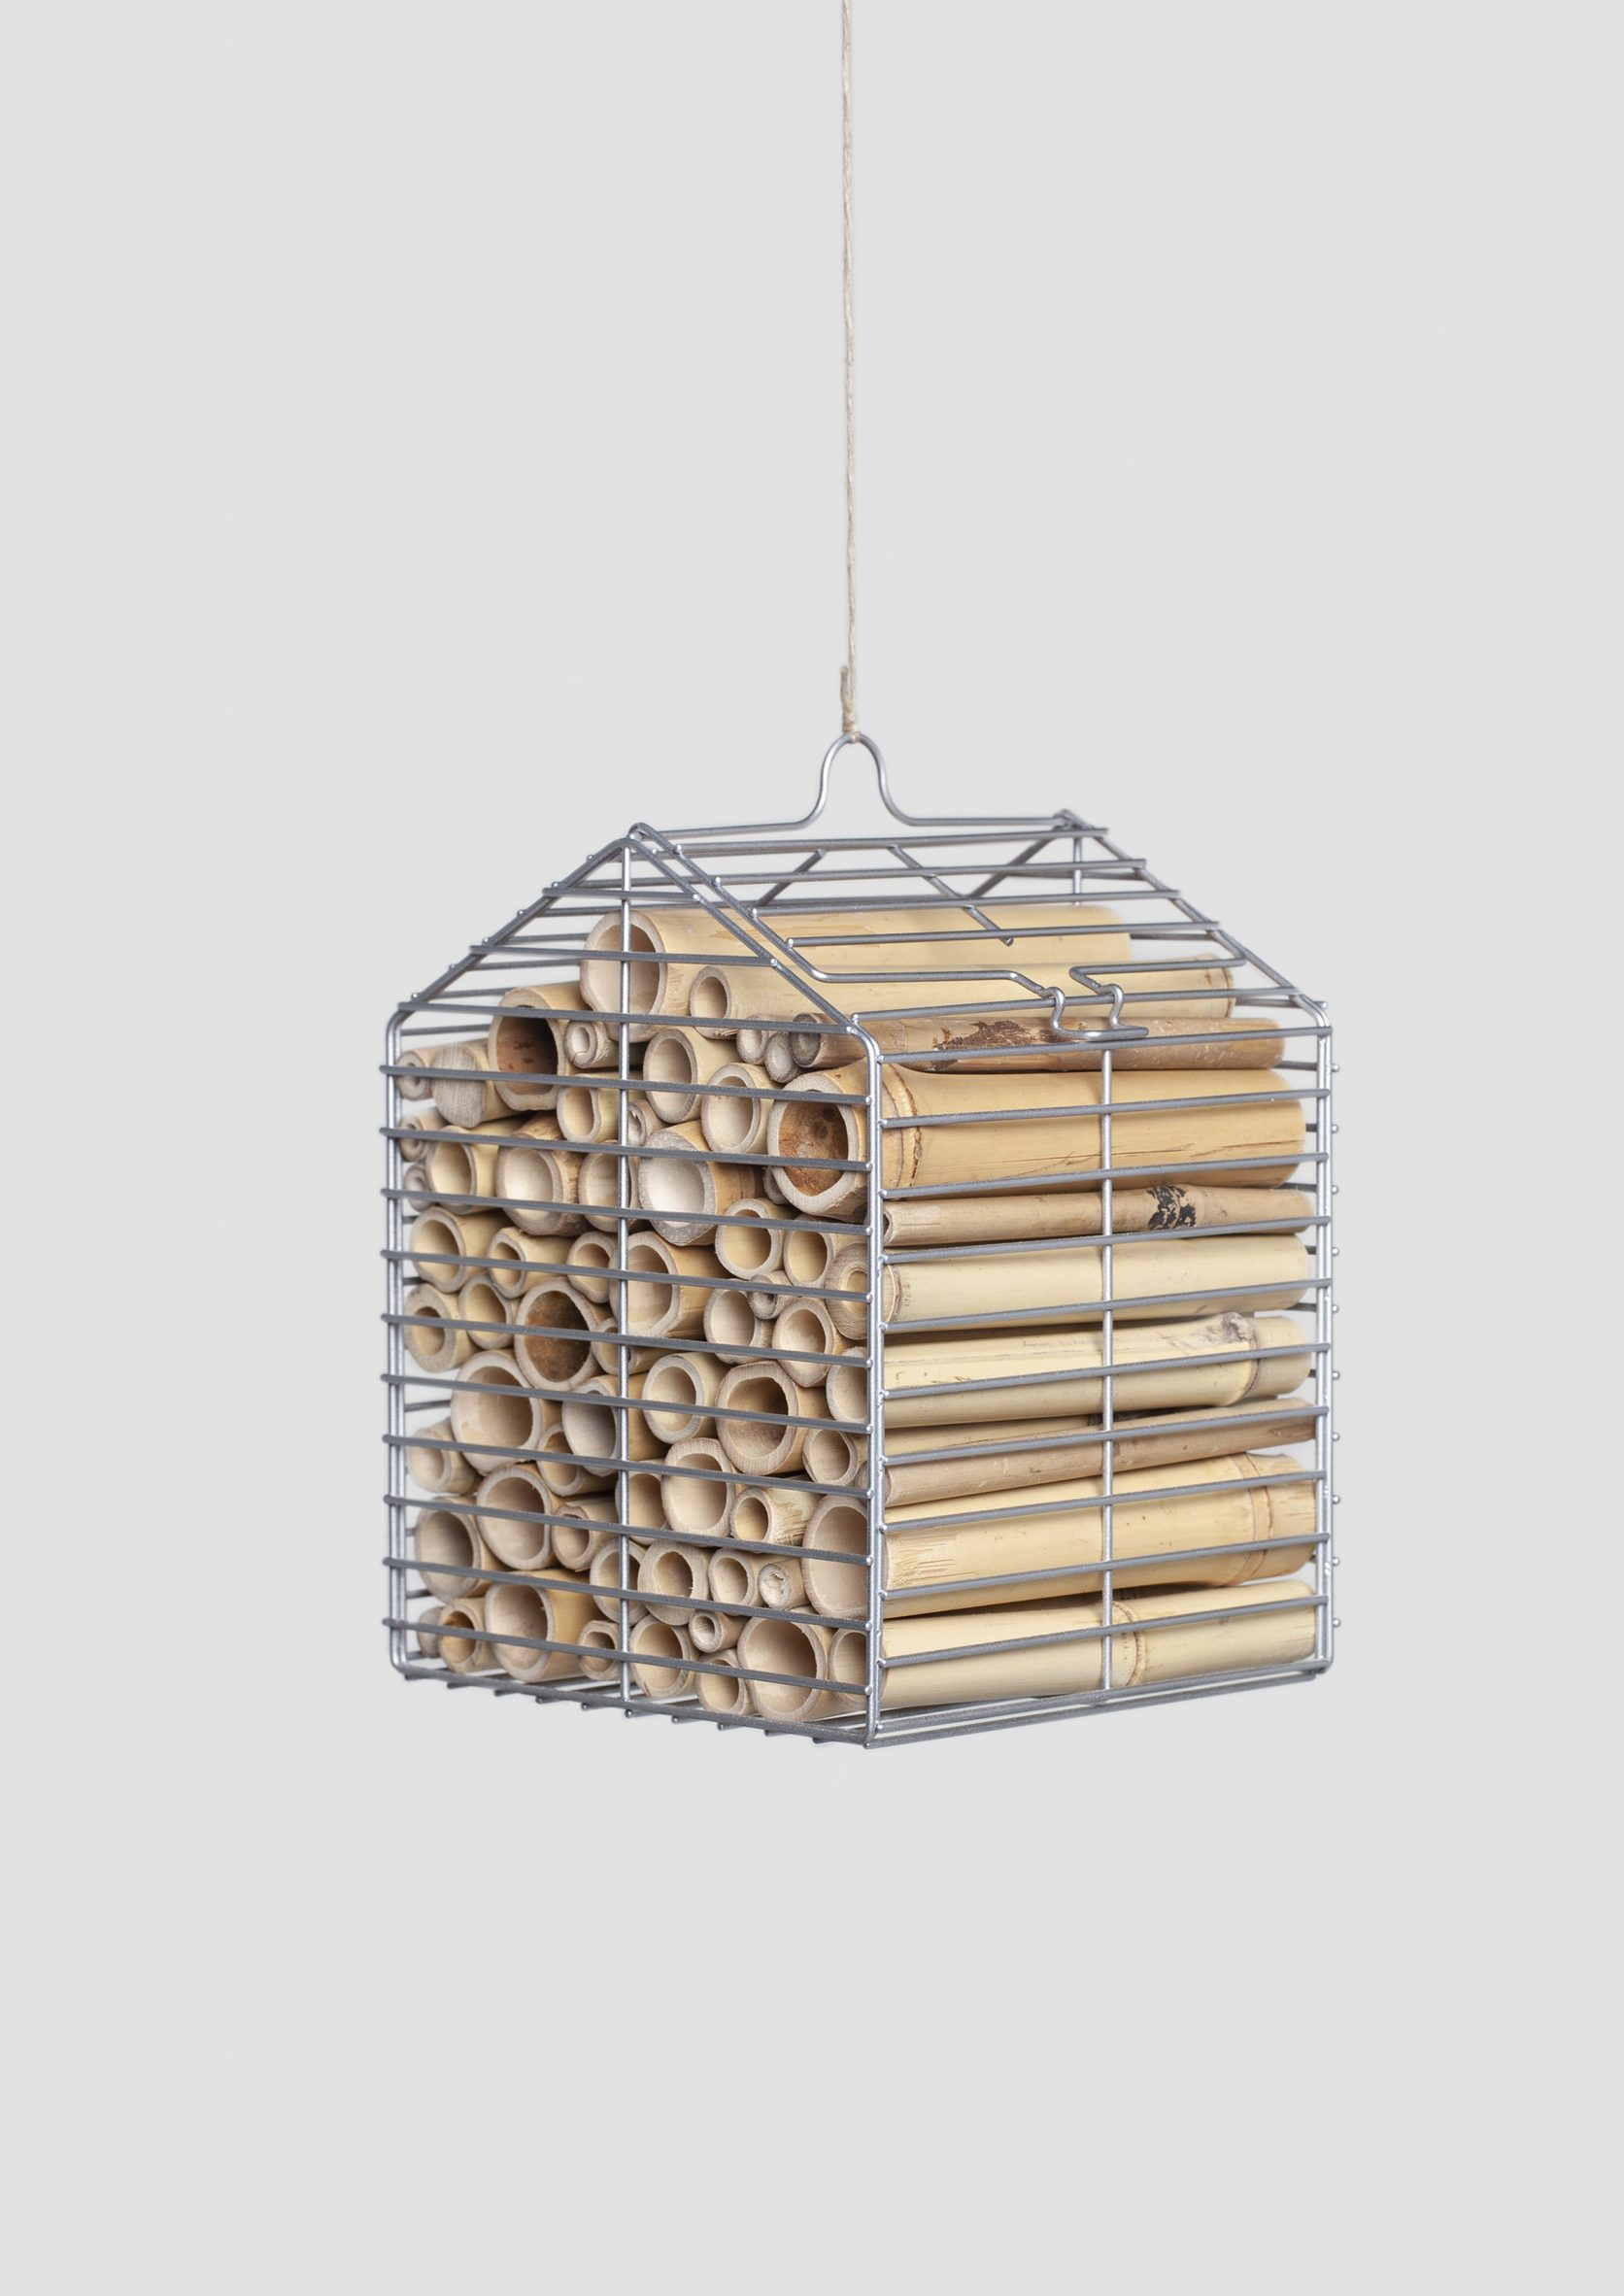 Insect House by an ÉCAL student